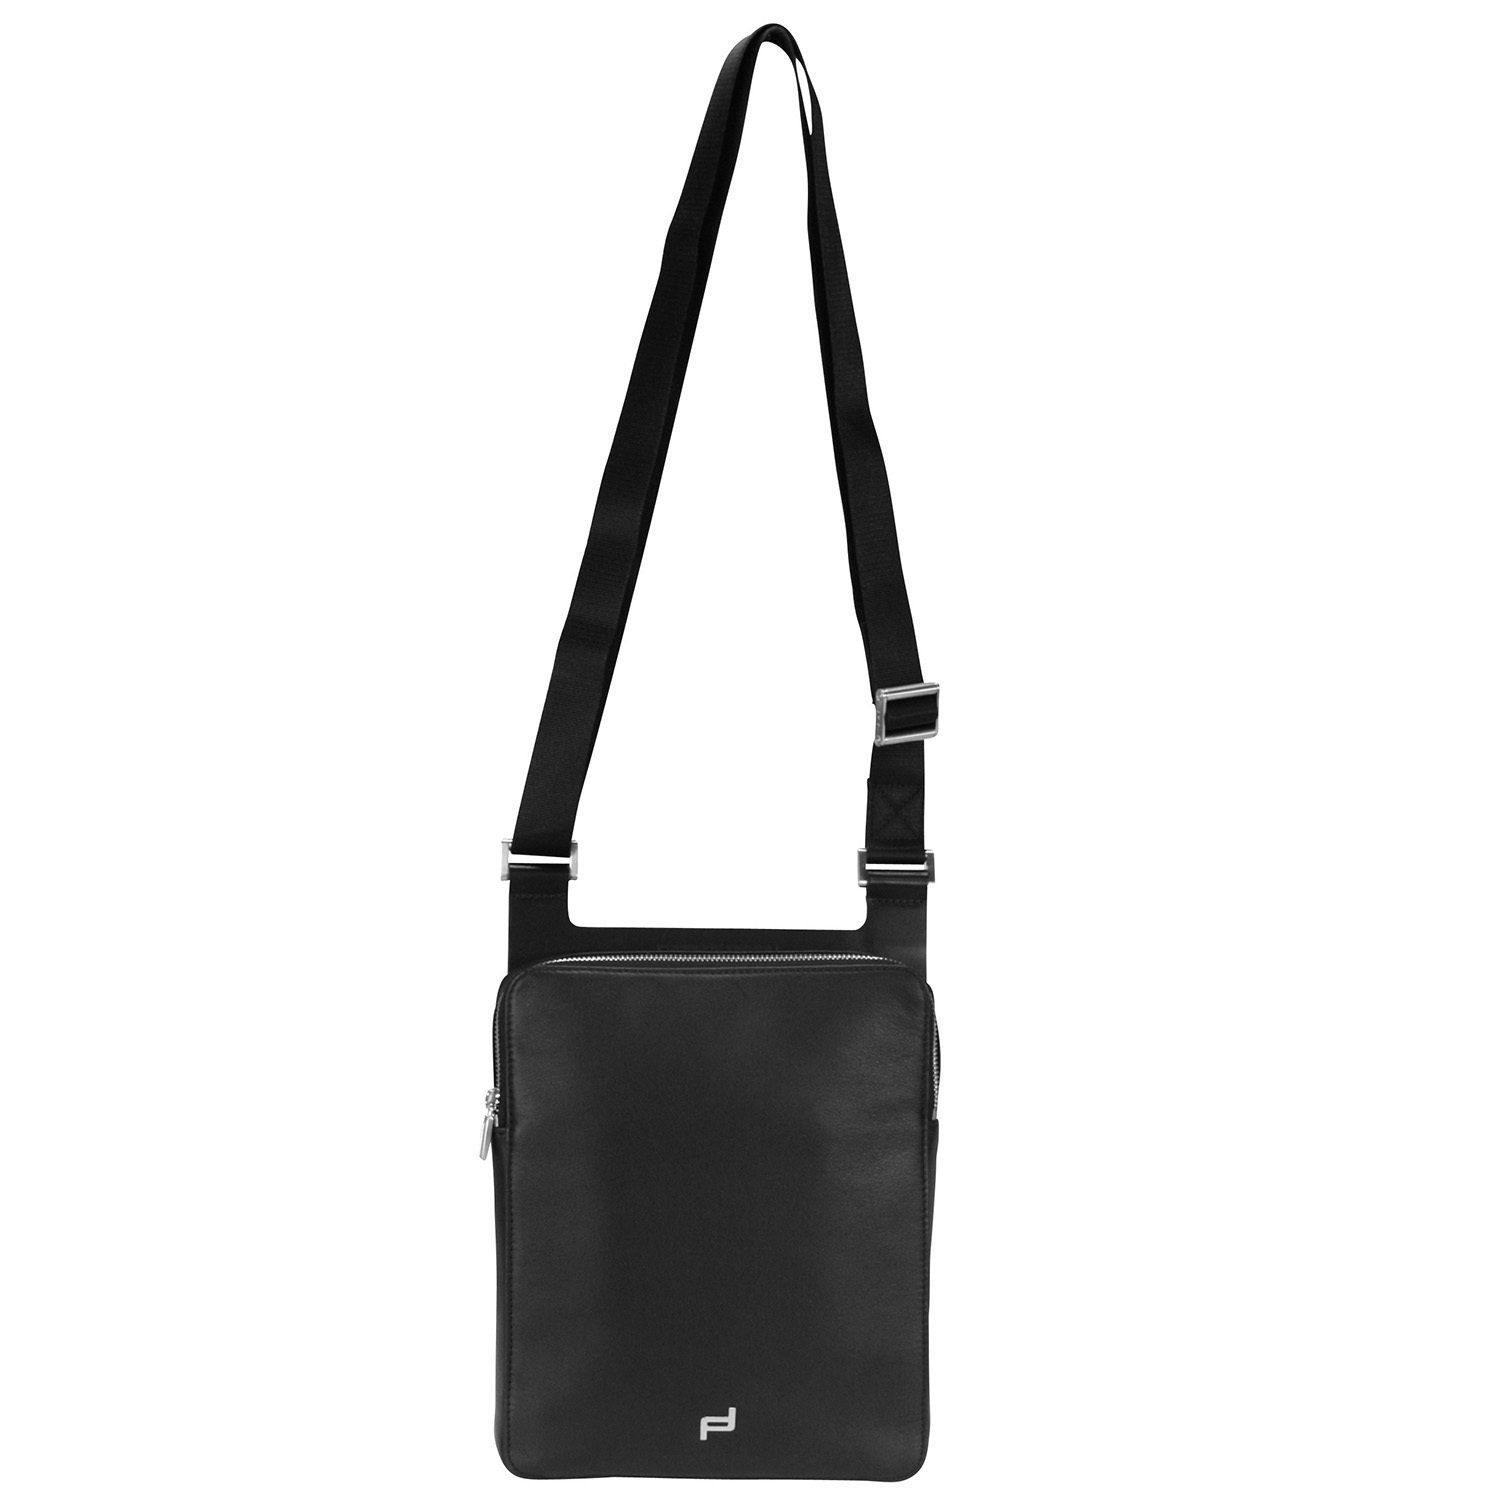 Porsche Design Shyrt-Leather ShoulderBag MV Umhängetasche Leder 21 cm